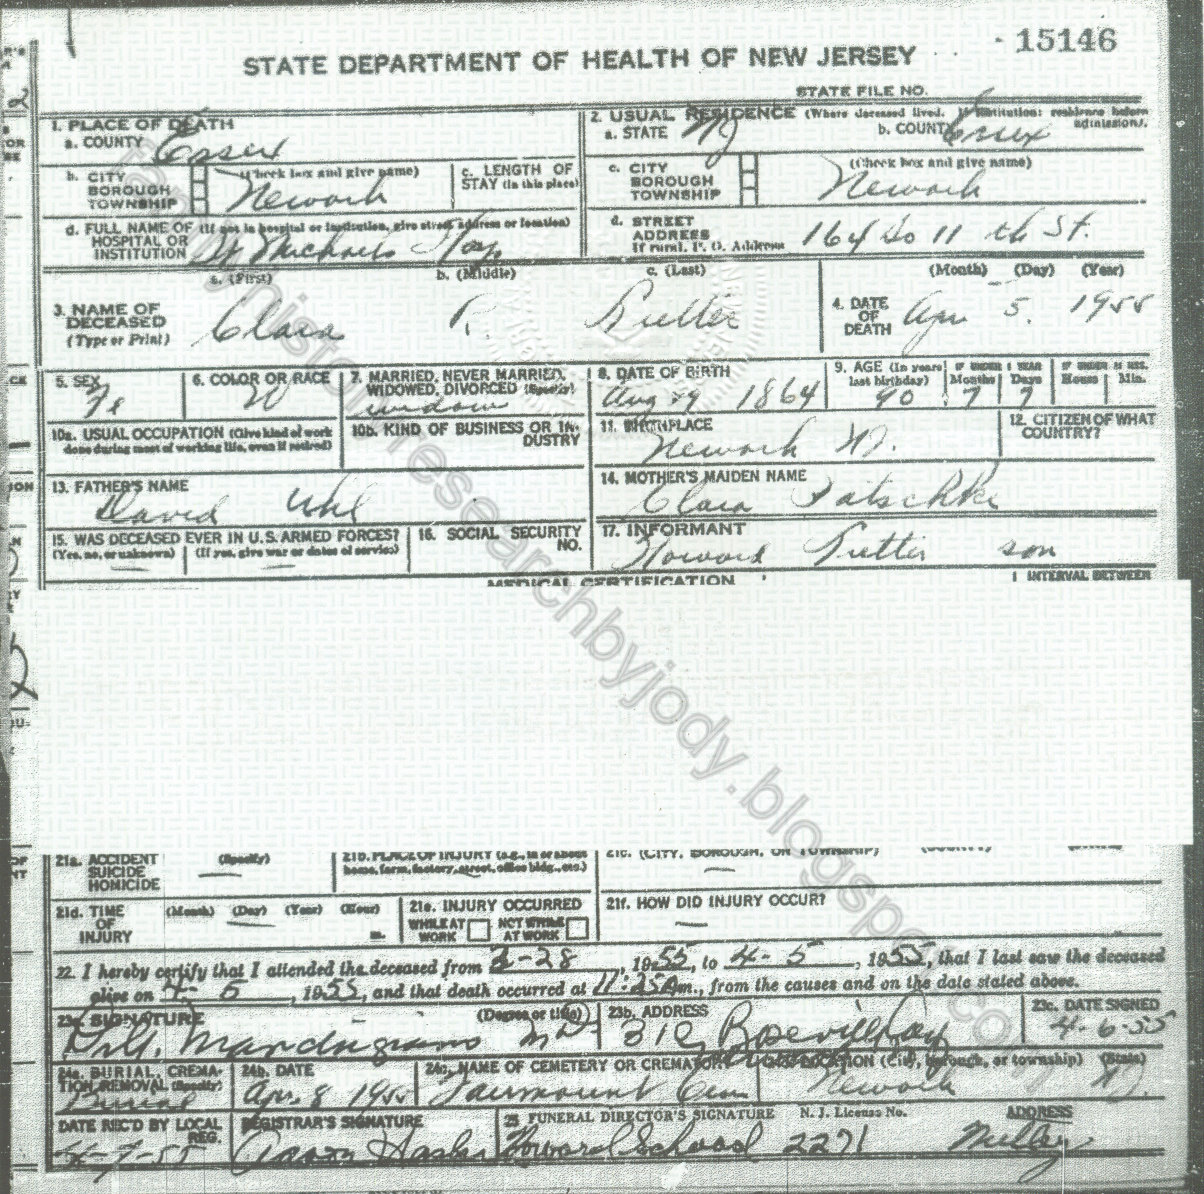 Family history research by jody new jersey death certificates death certificate for clara lutter nee uhl died 5 april 1955 in newark obtained through the department of health and senior services aiddatafo Images